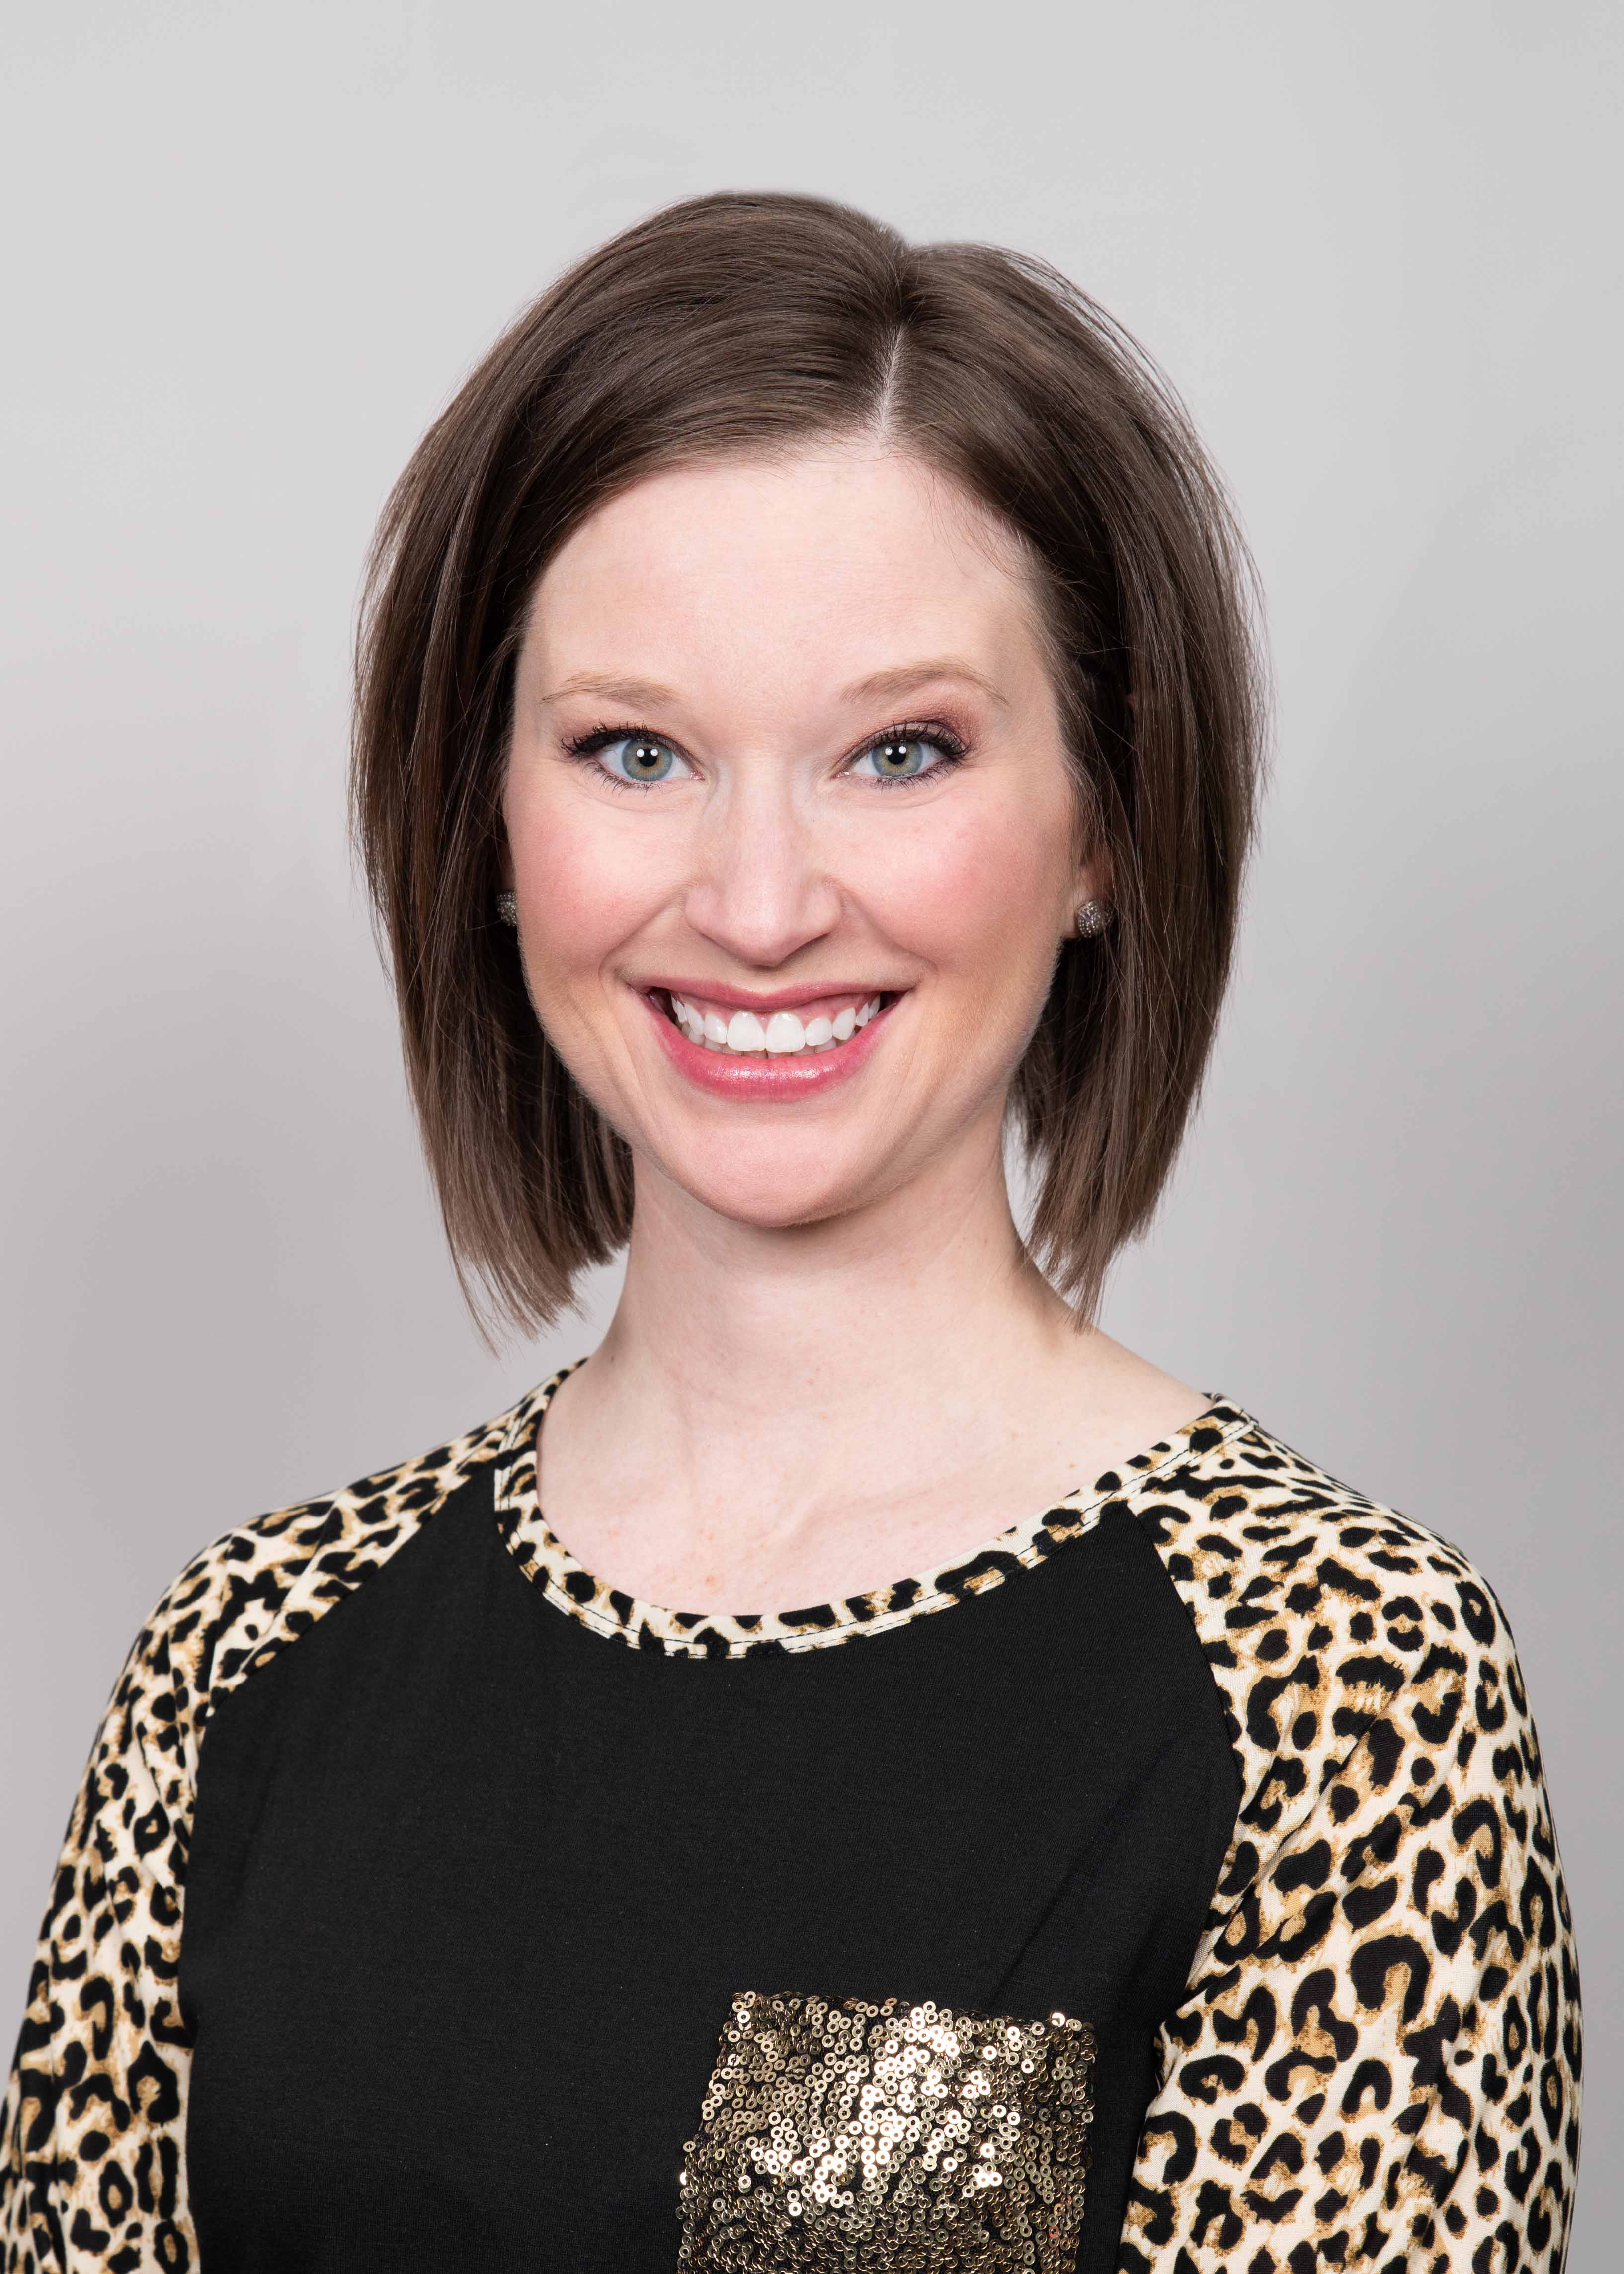 Brittany Boechler - Downtown Dental - Jamestown, ND